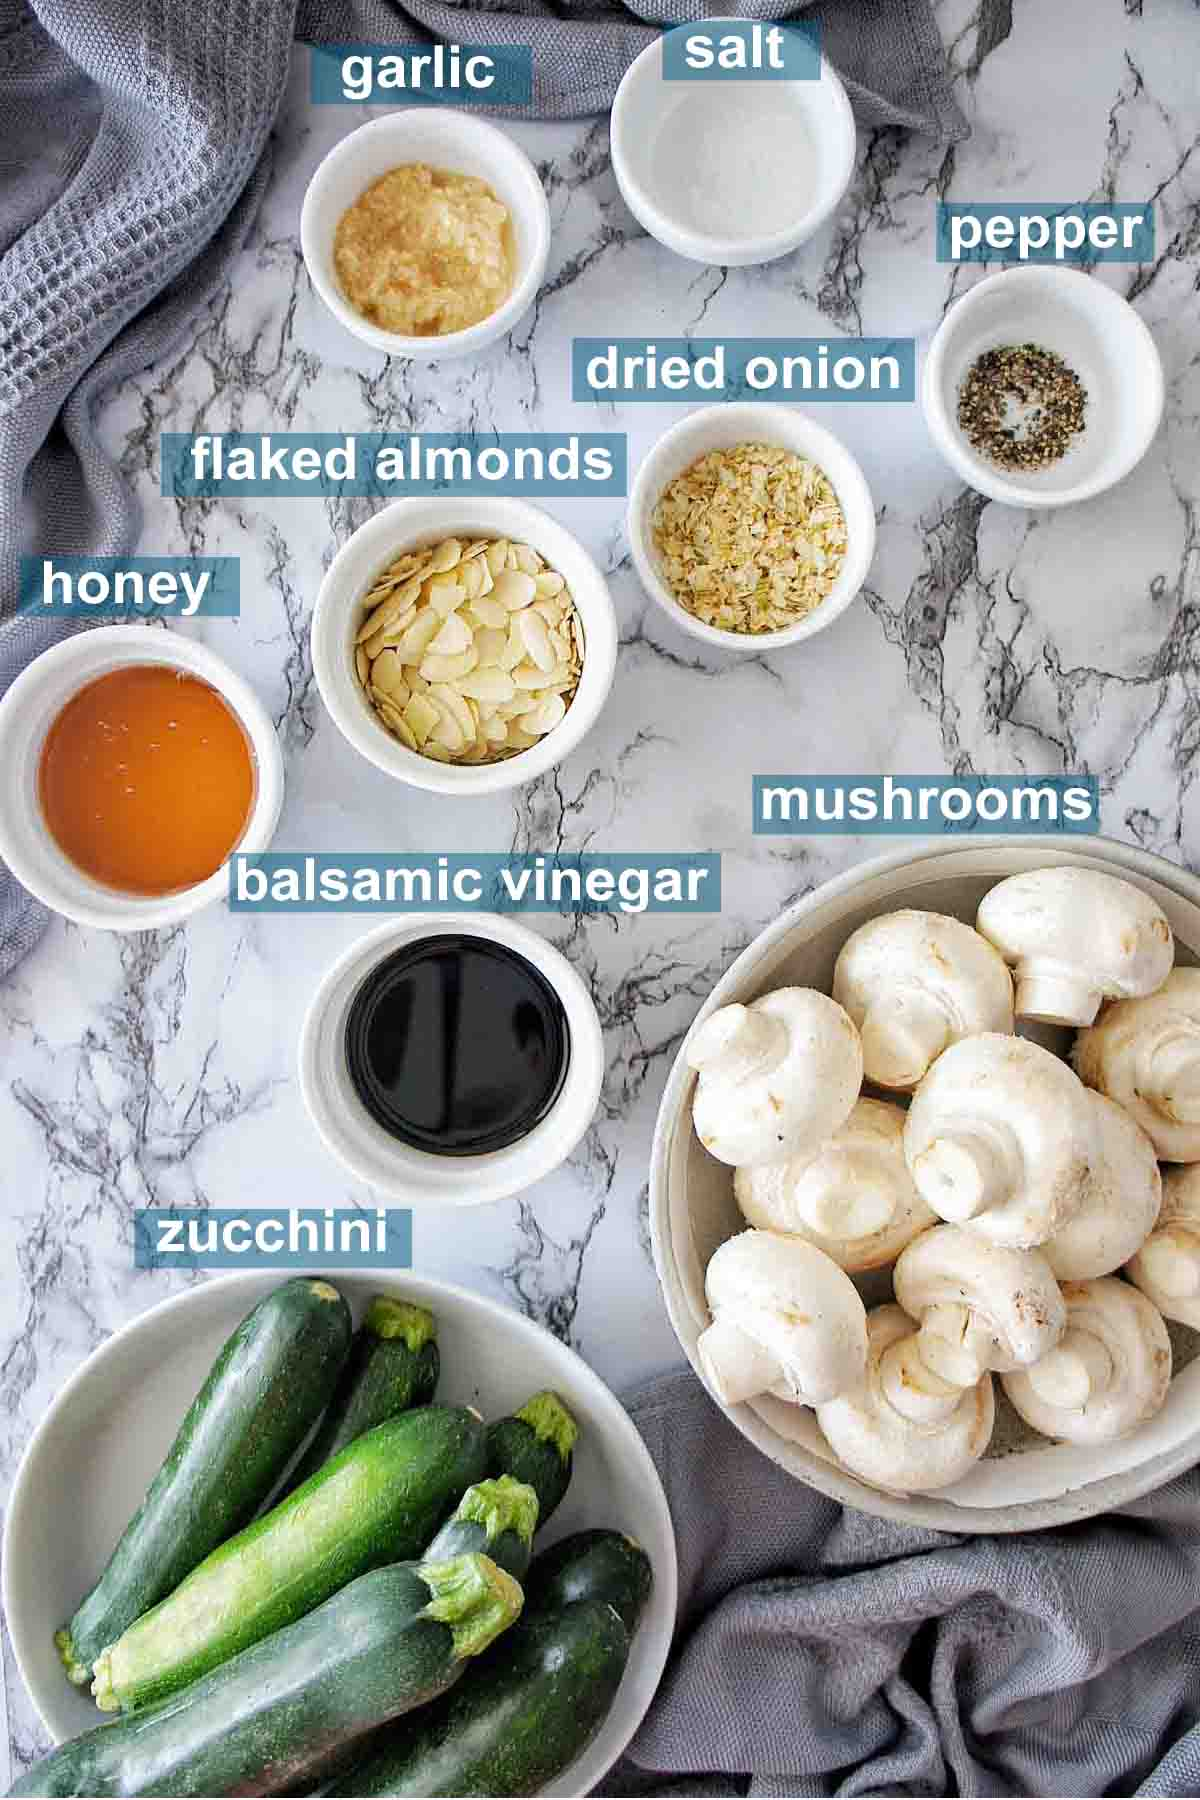 Ingredients for sauteed zucchini and mushrooms on a marble background with text overlay